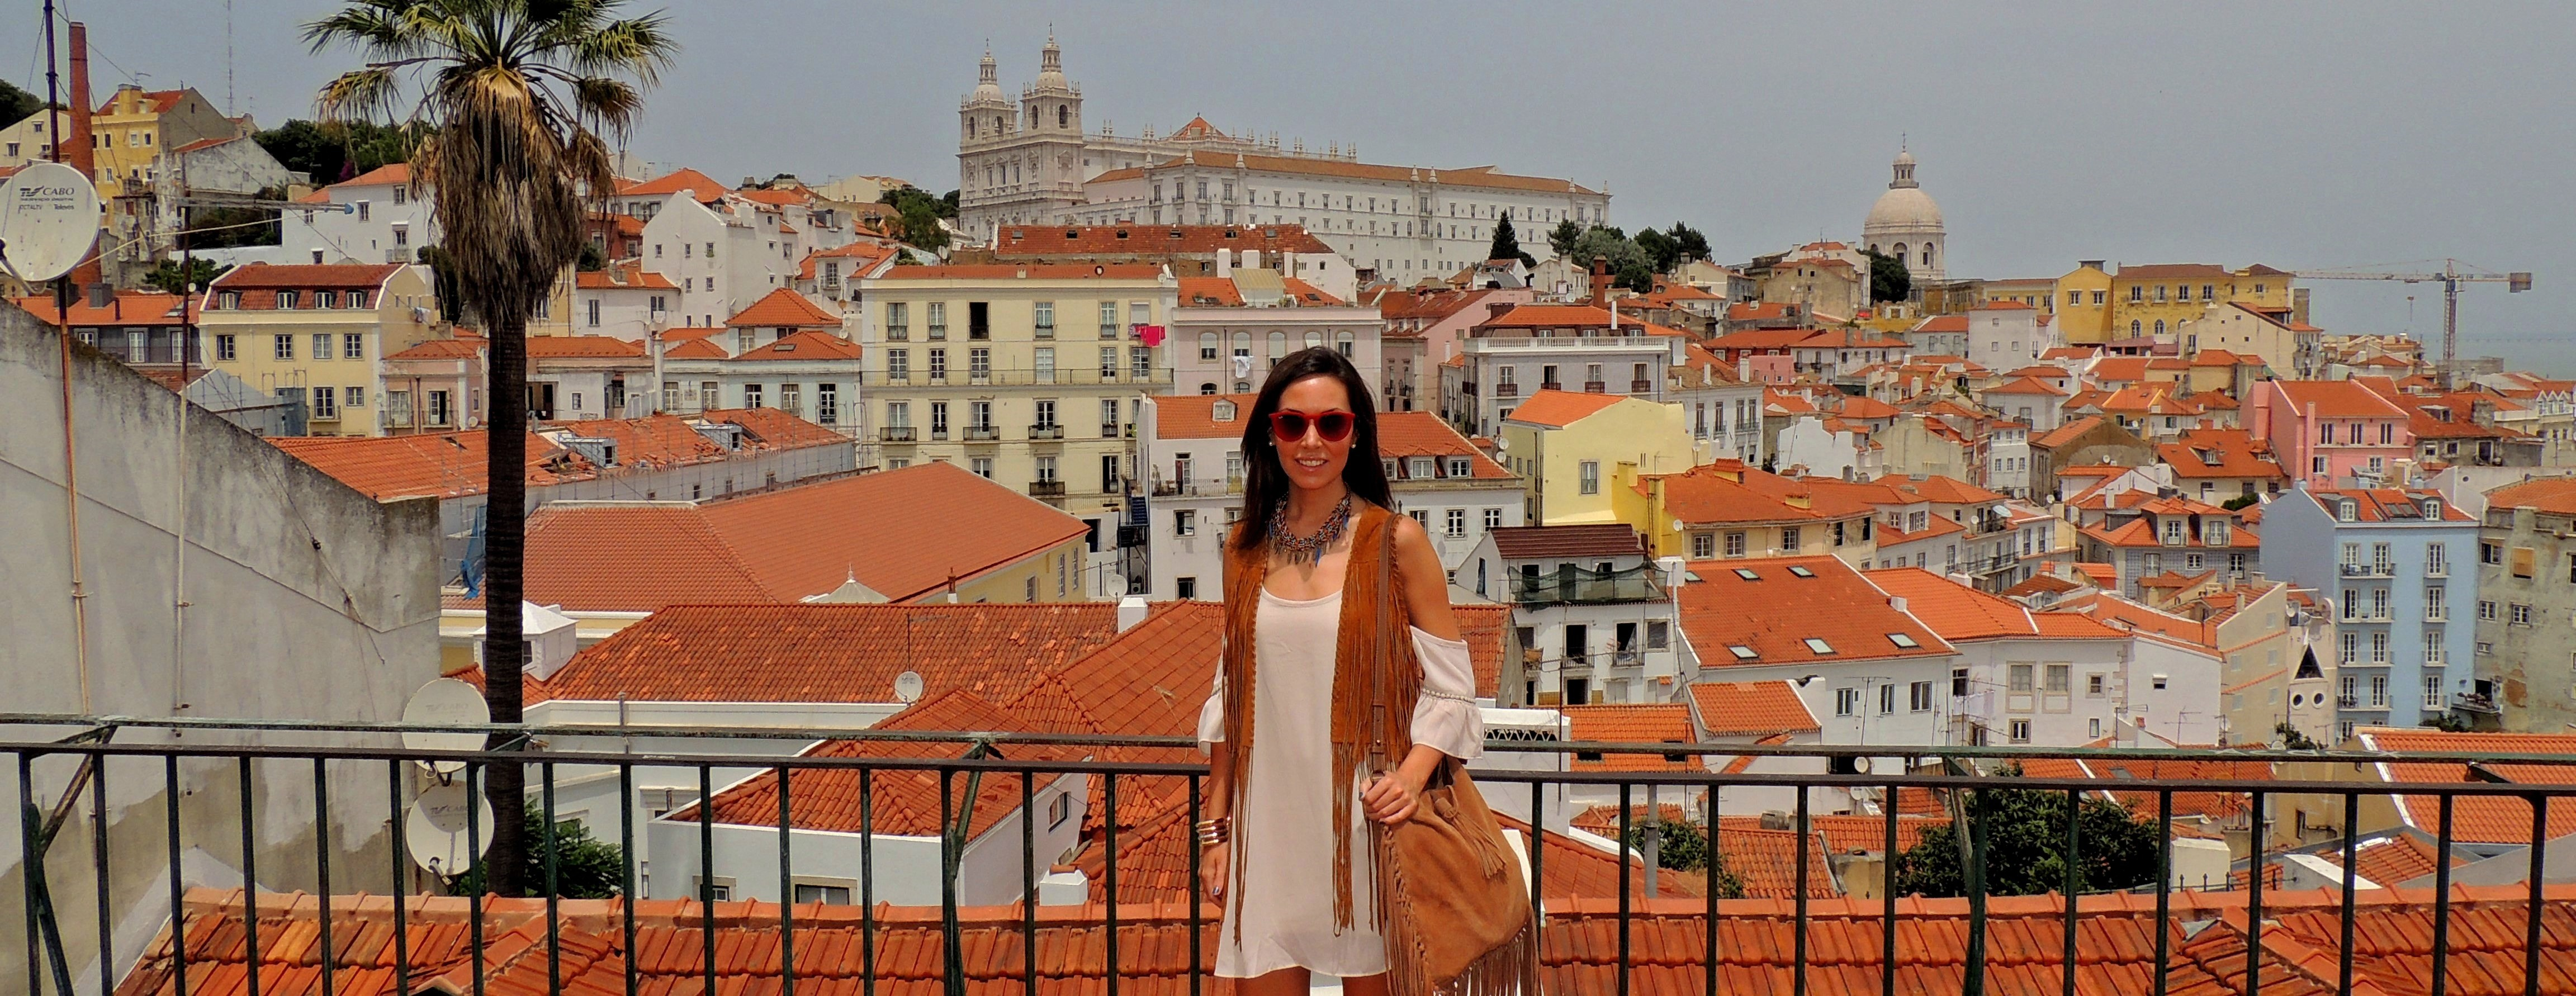 Lisbon Charming Places – My Lisbon Travel Guide (I)